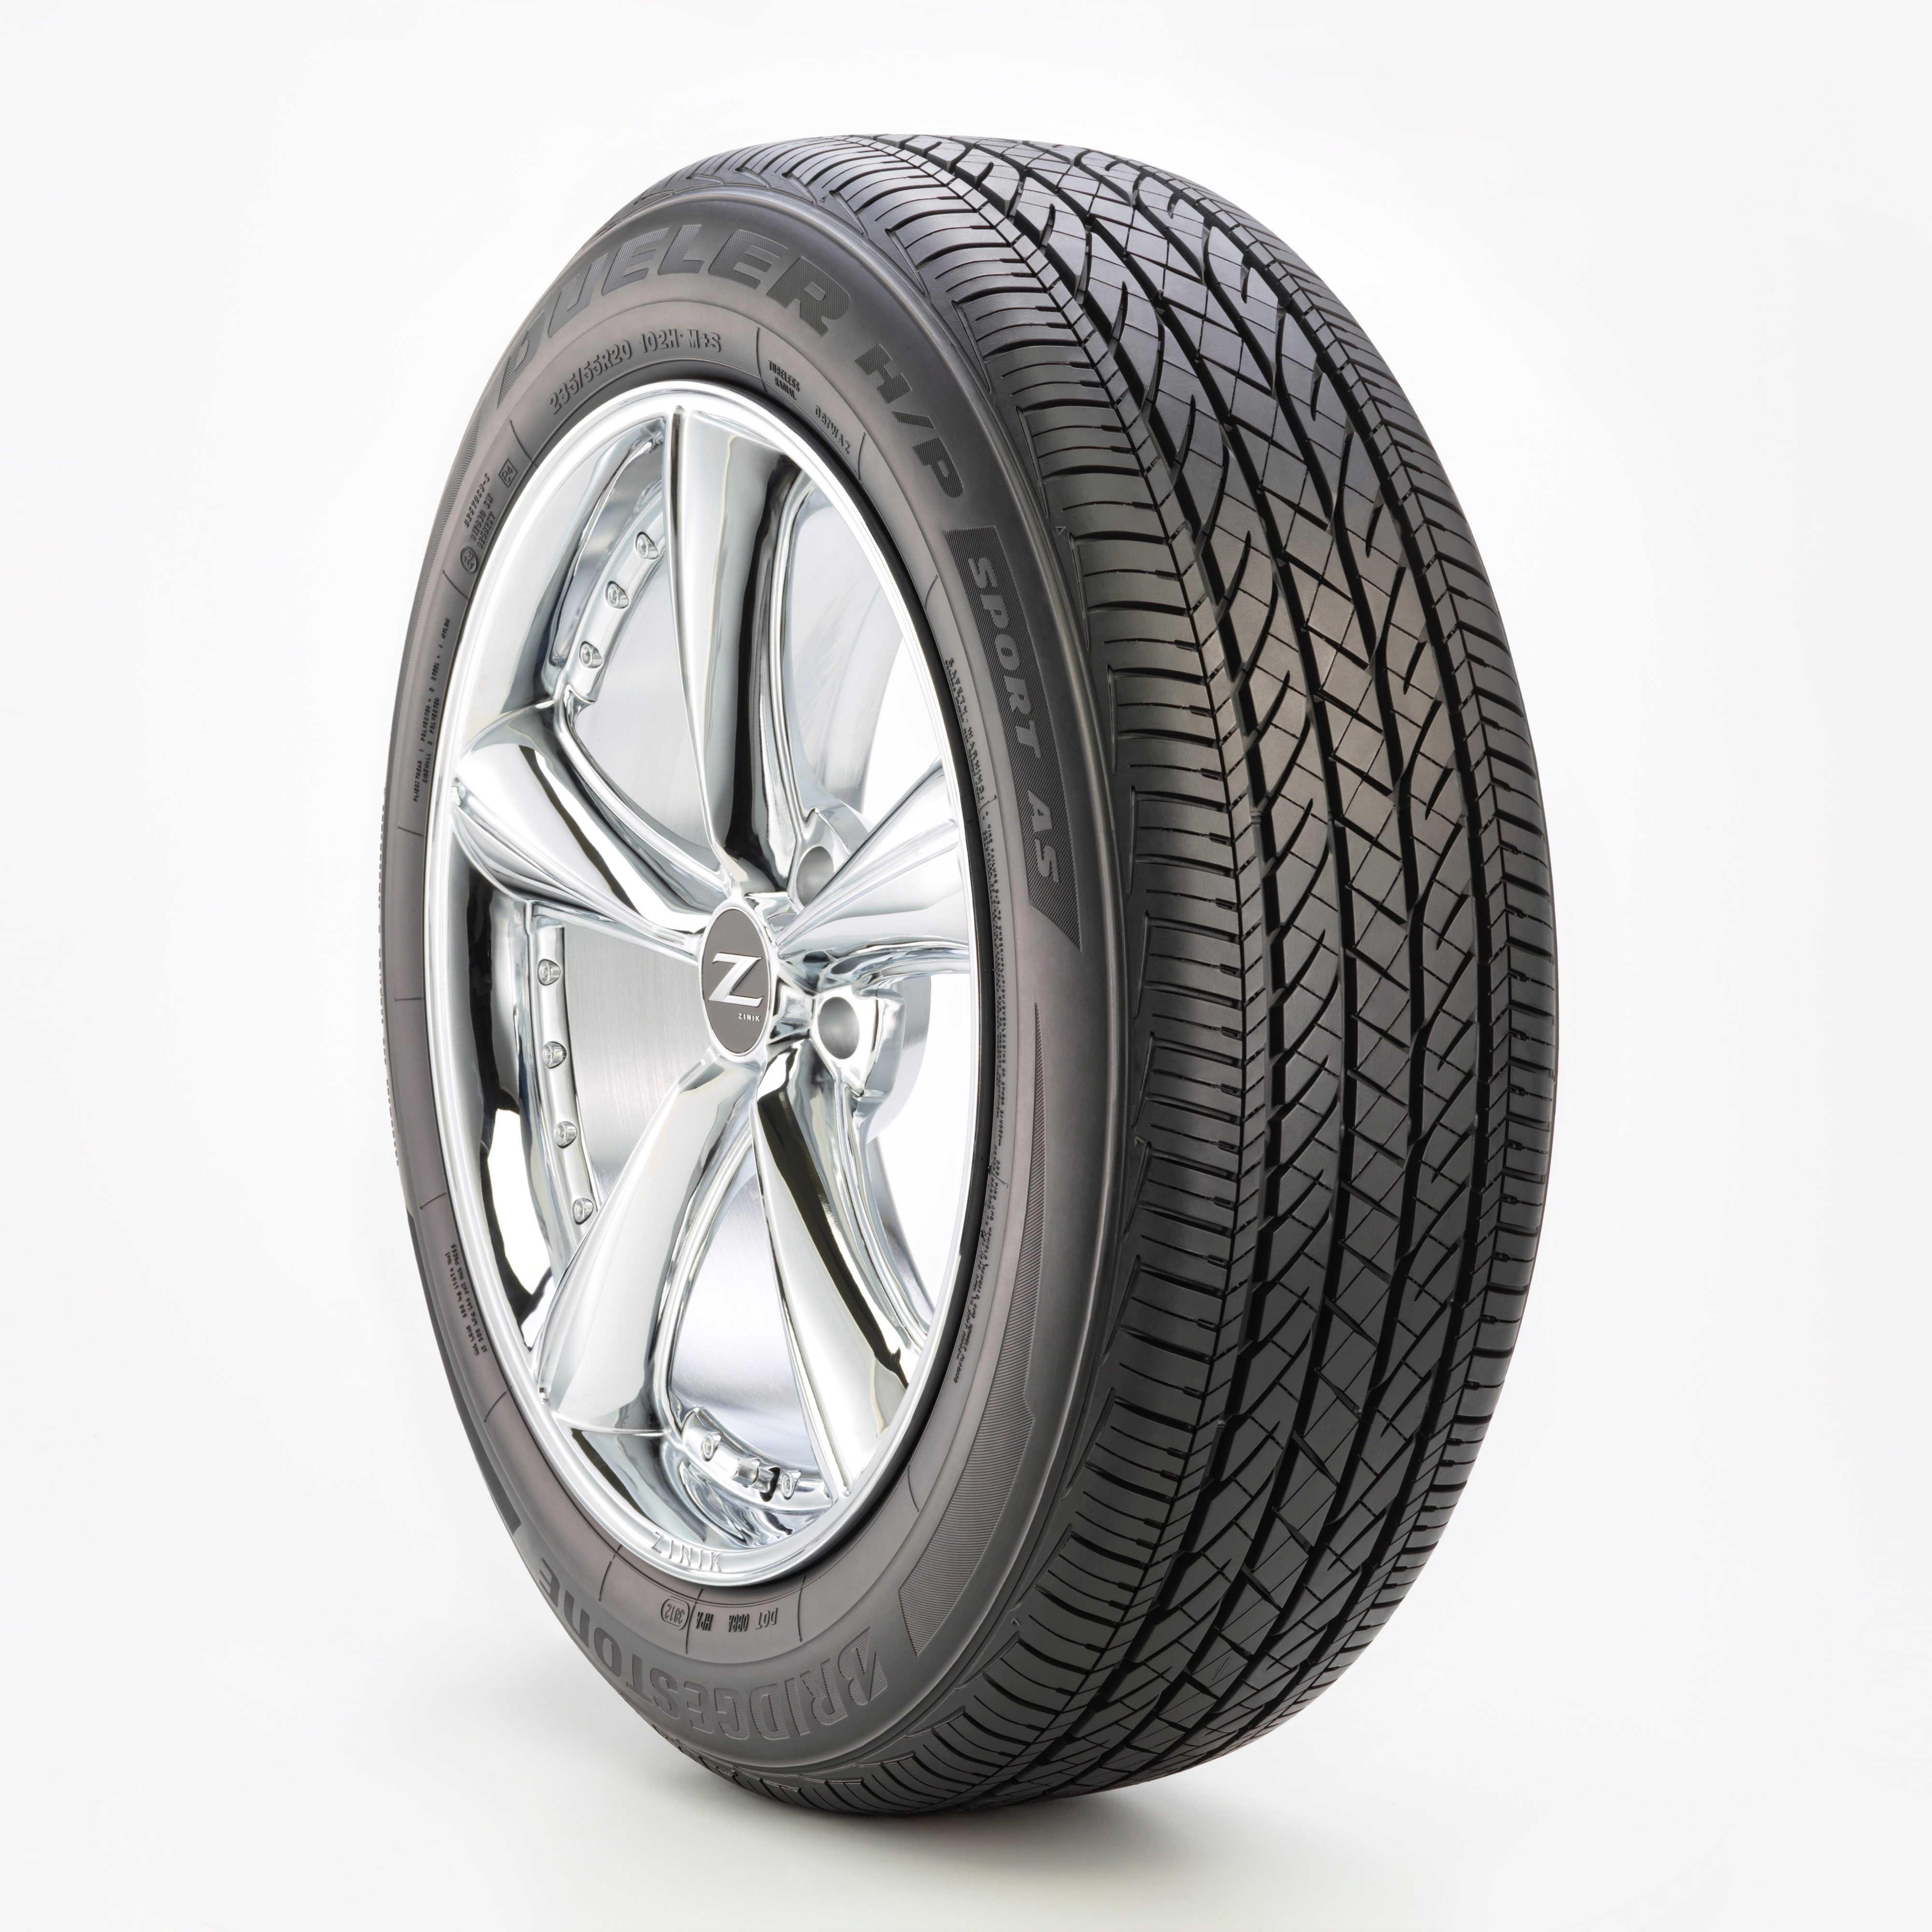 Dueler High Performance Asymmetric Run-Flat Technology Tyre